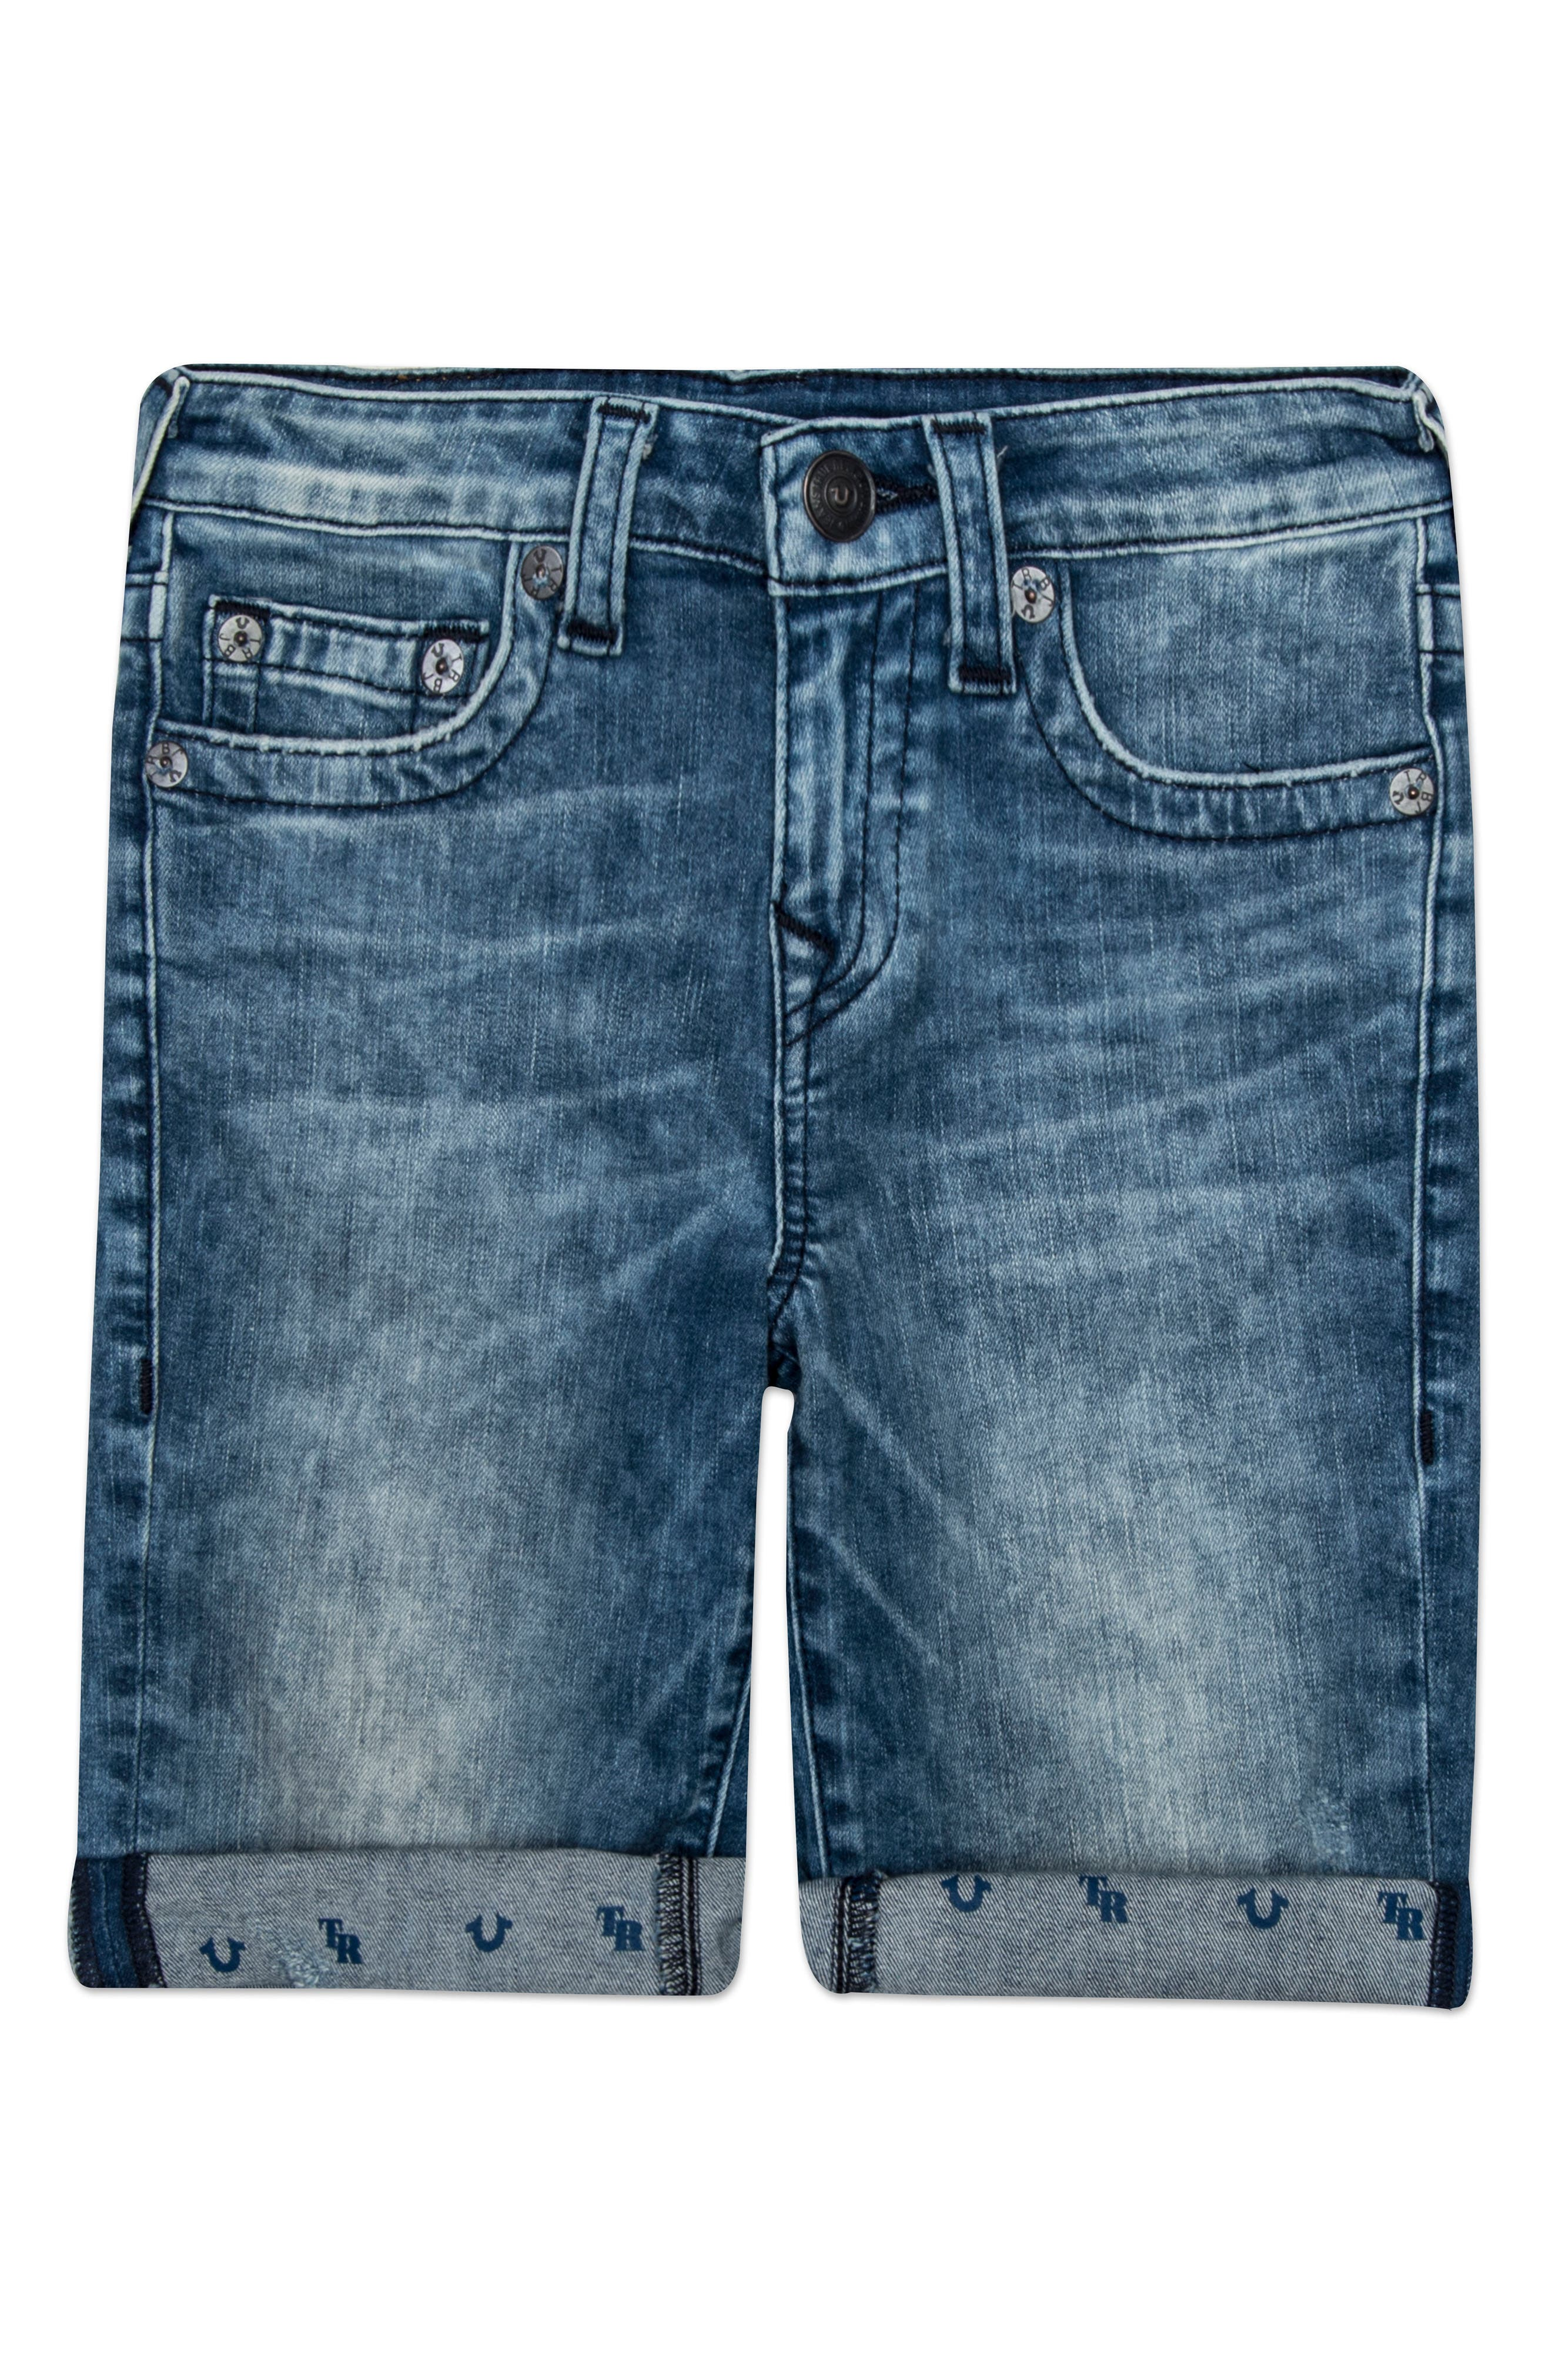 Alternate Image 1 Selected - True Religion Brand Jeans Geno Shorts (Toddler Boys & Little Boys)